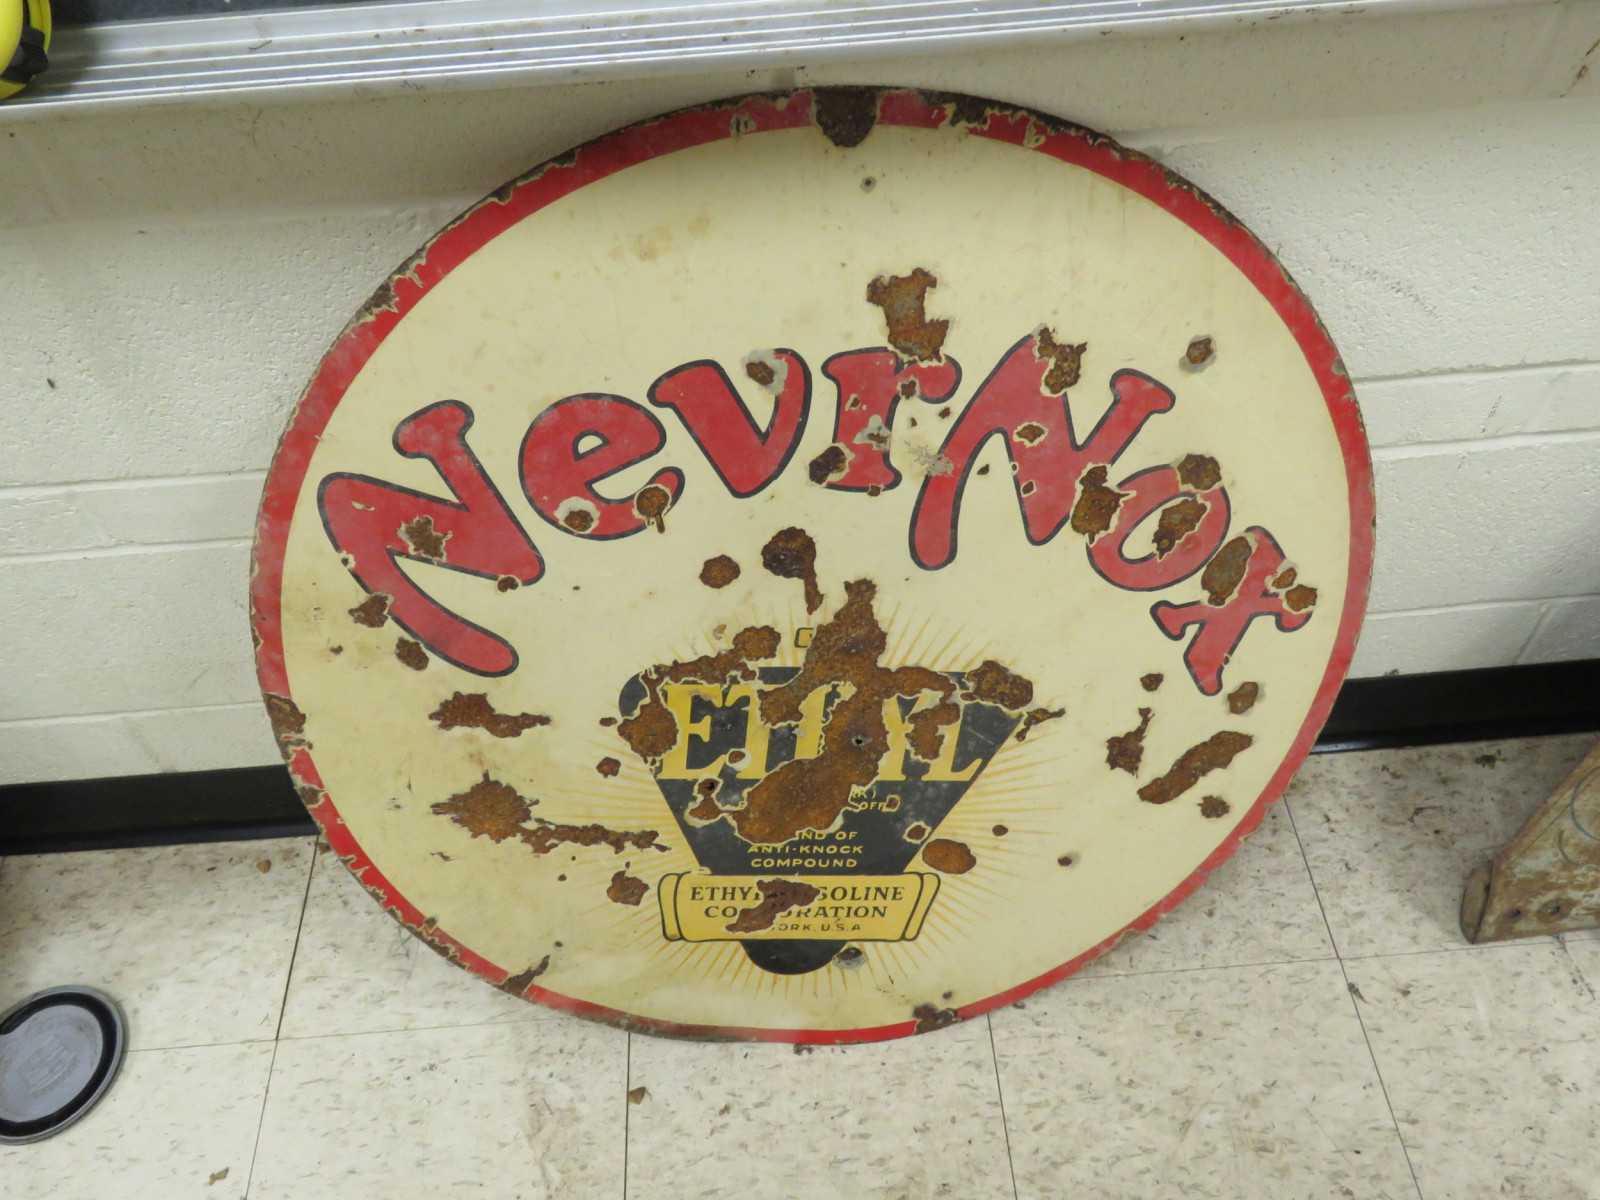 NevrNox Ethyl Porcelain Sign - Image 1